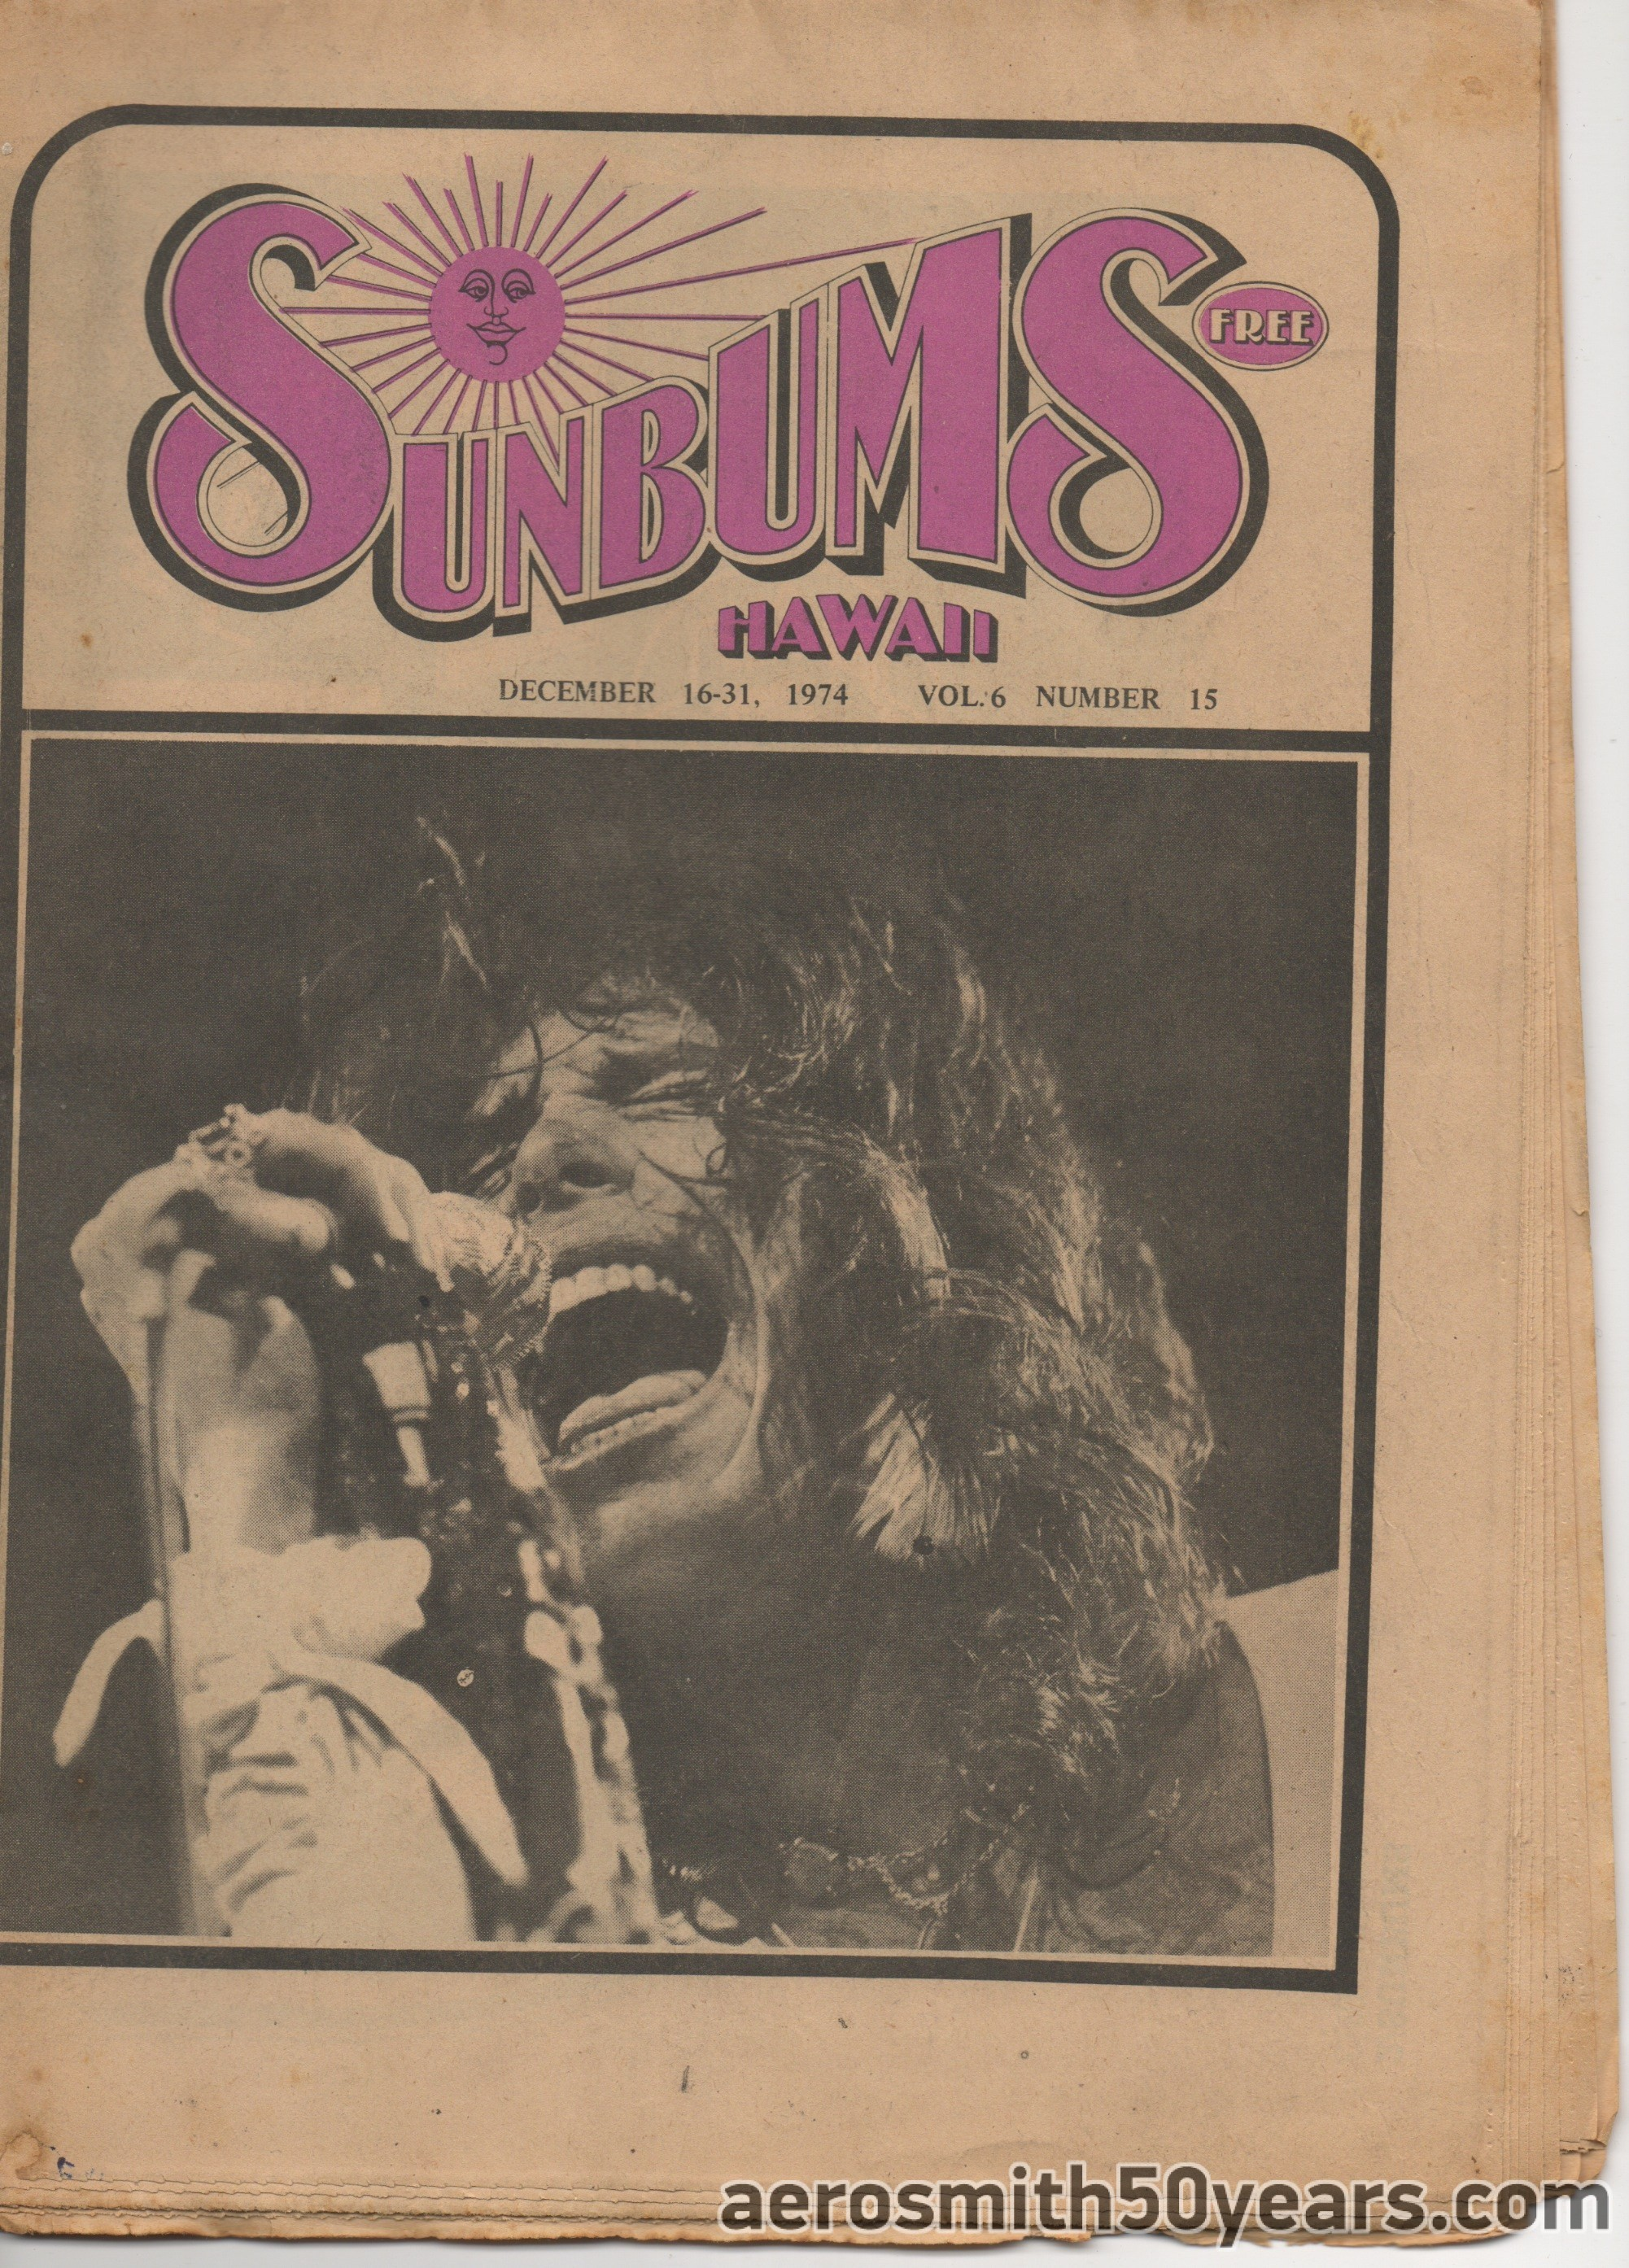 Sunbums (Free Hawaii Magazine)- December 16-31, 1974. *I'm looking for a copy of this if anyone might have it please contact us. Thanks!